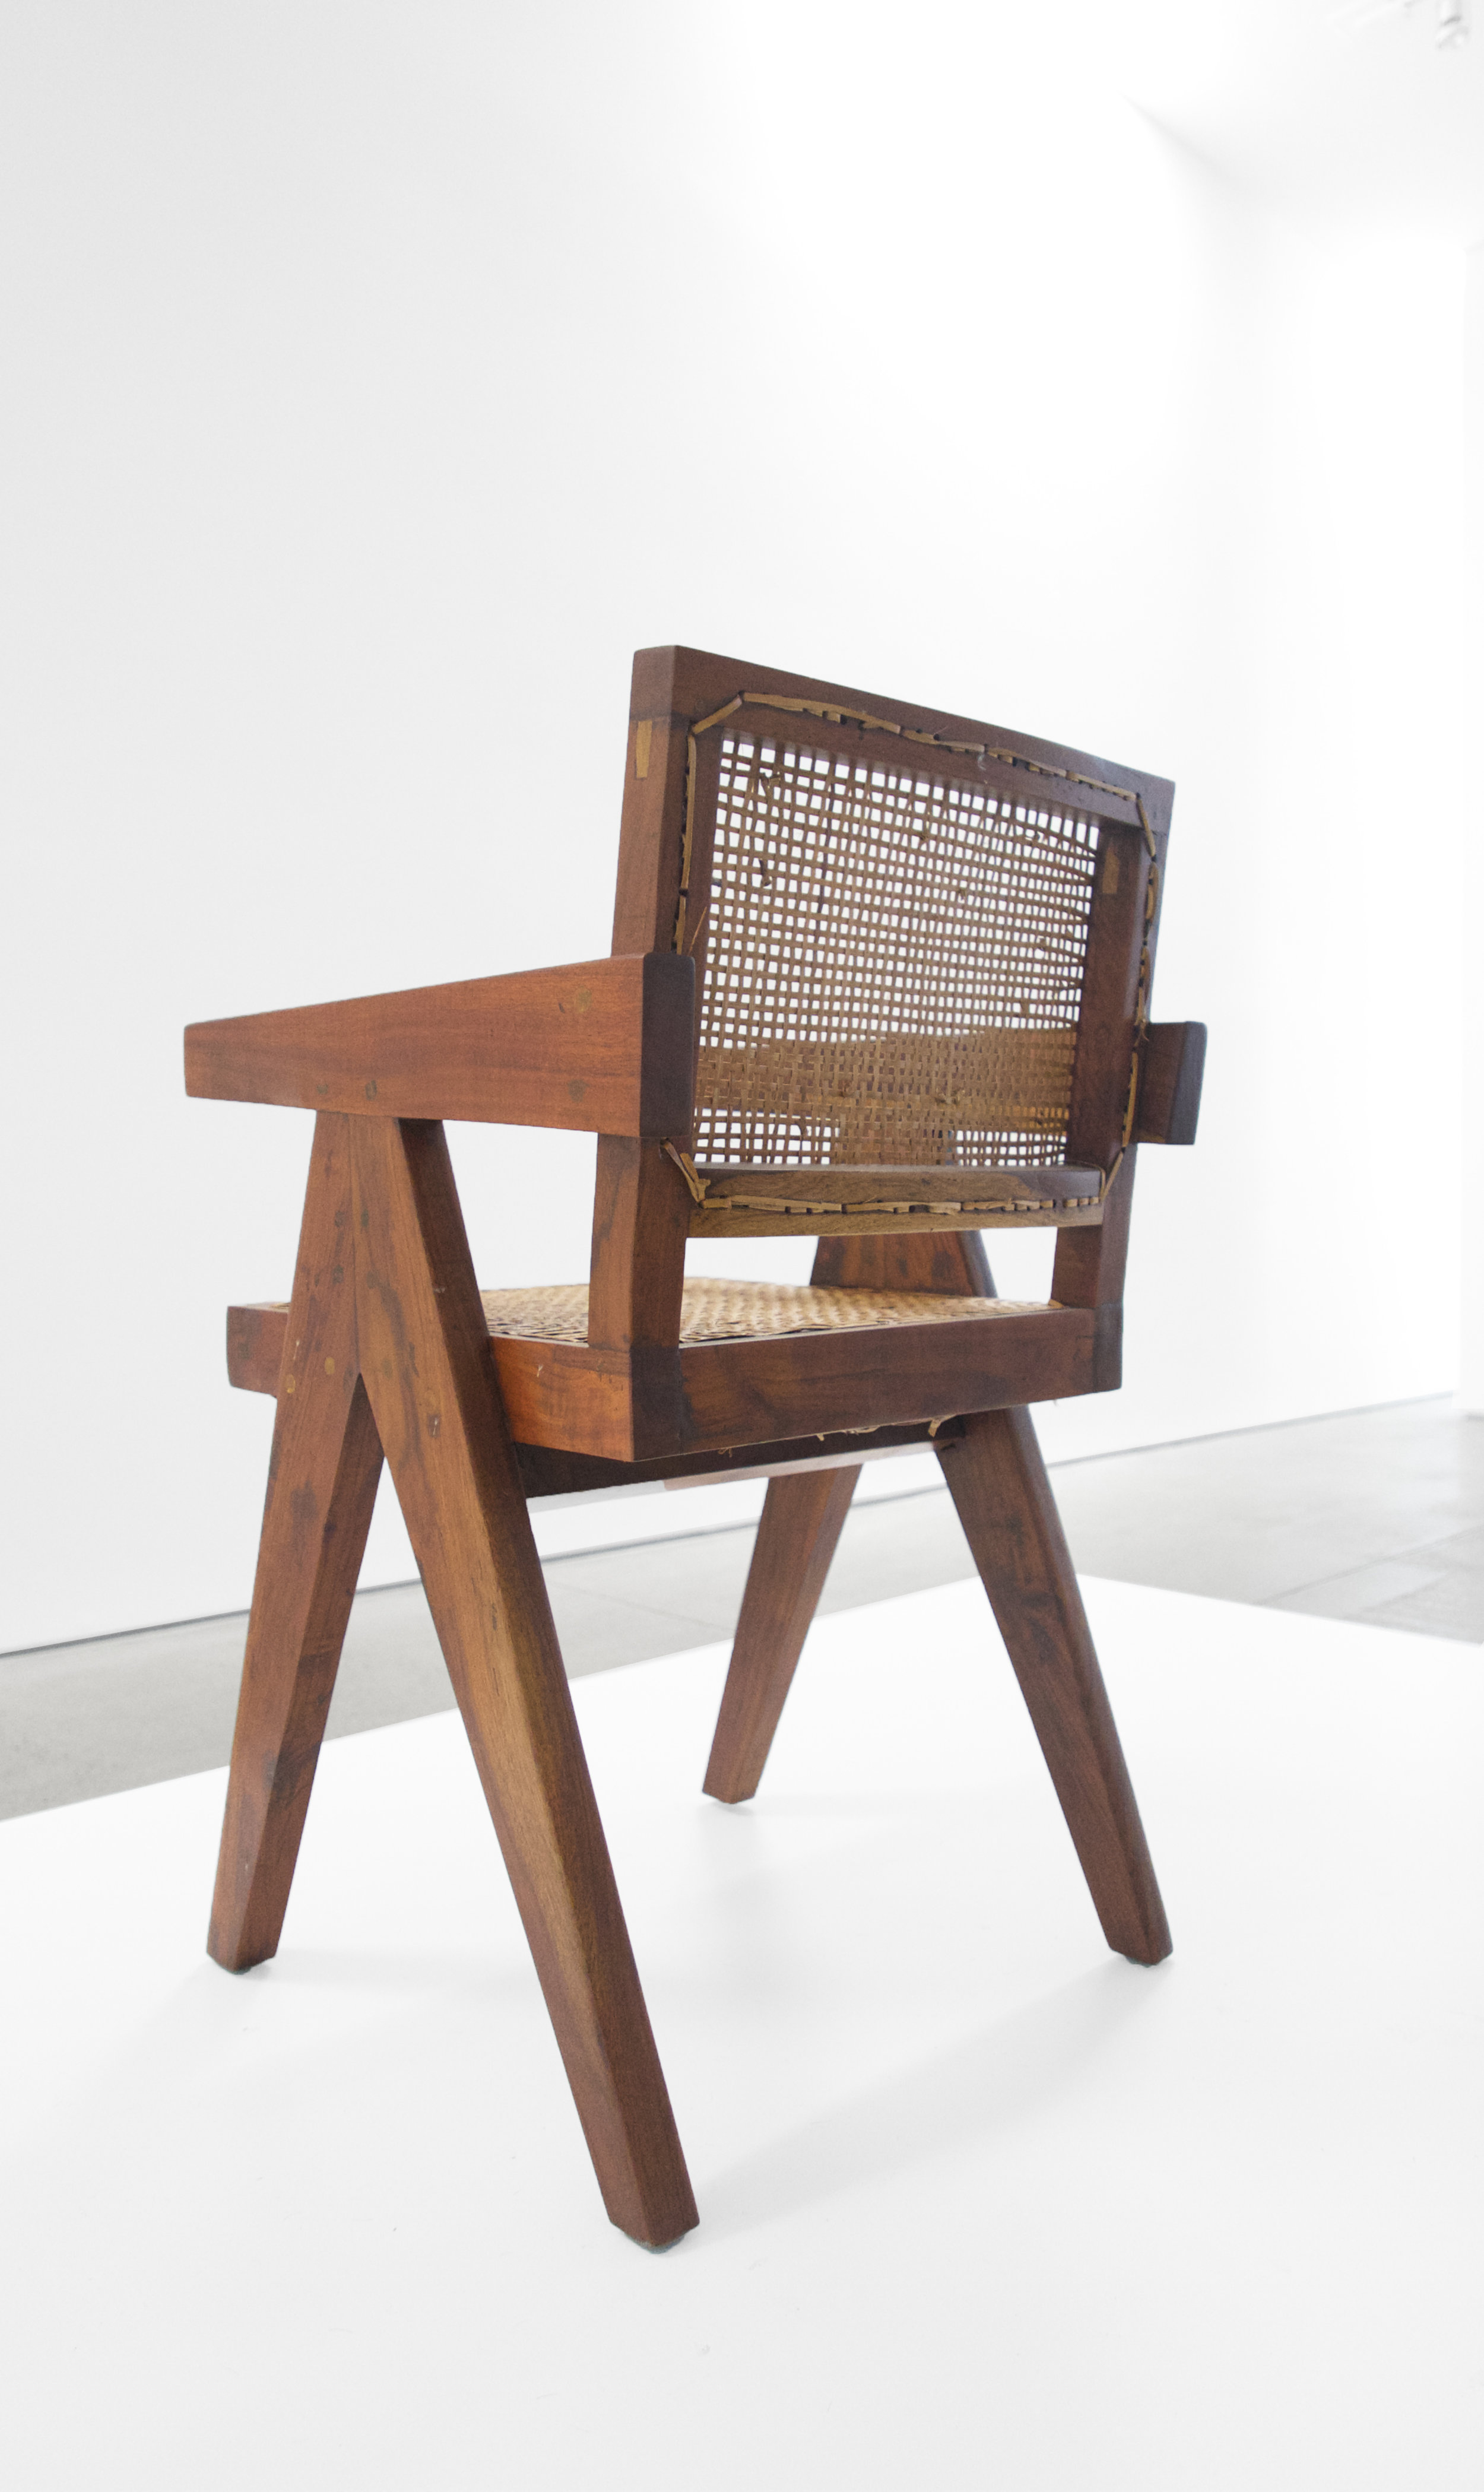 Pierre Jeanneret, Teak Conference Chair from the City of Chandigarh, India, c. 1952, 31 H x 18 W x 19.75 D inches_6.jpg